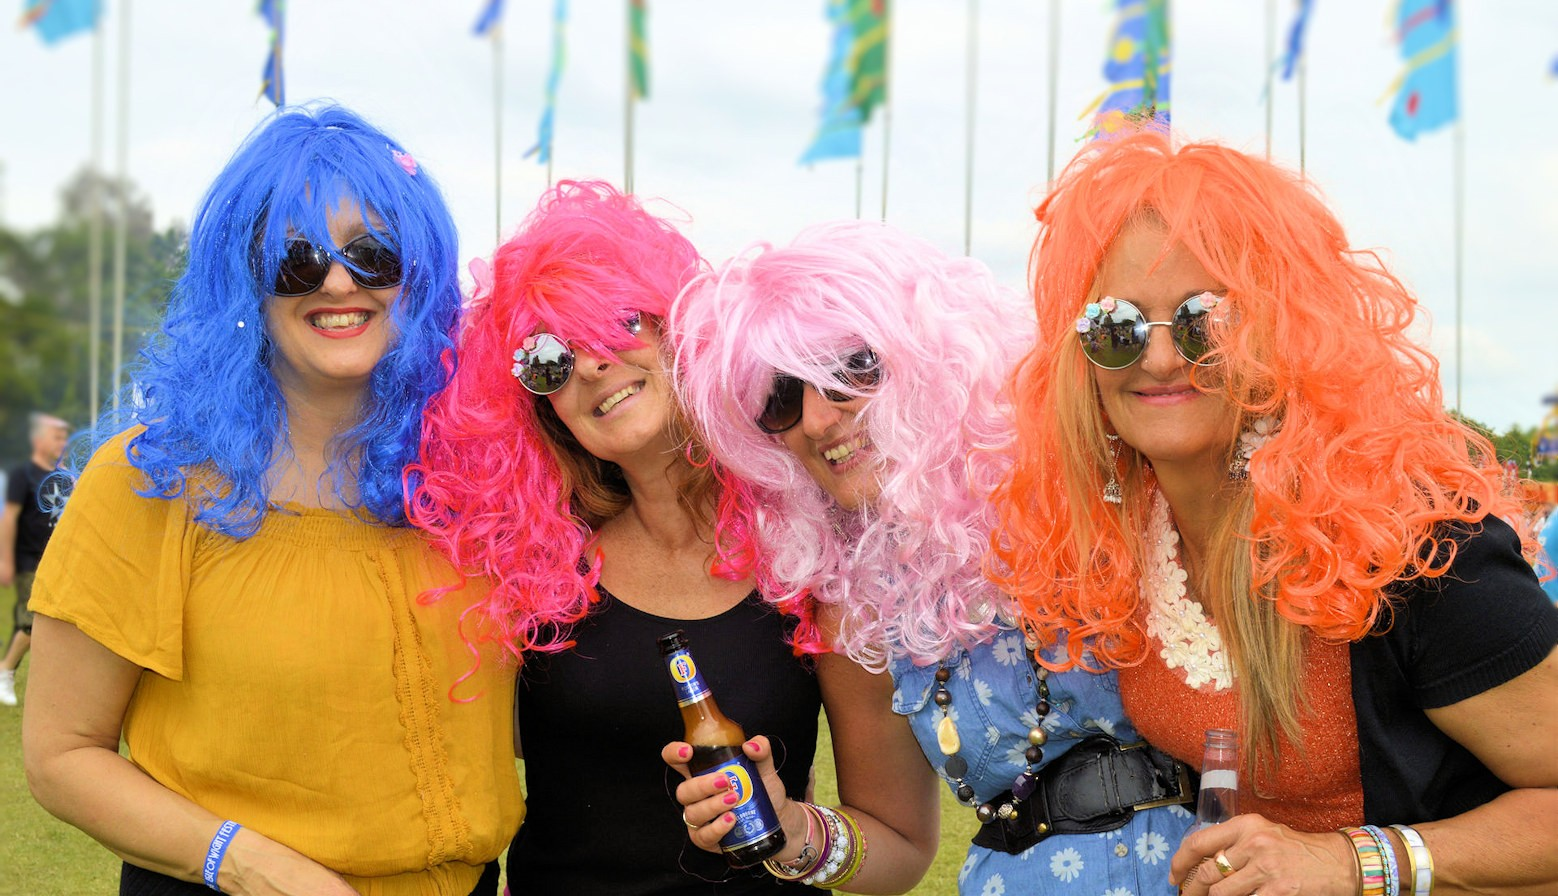 Isle of Wight Festival - Visitors in Colour Wigs